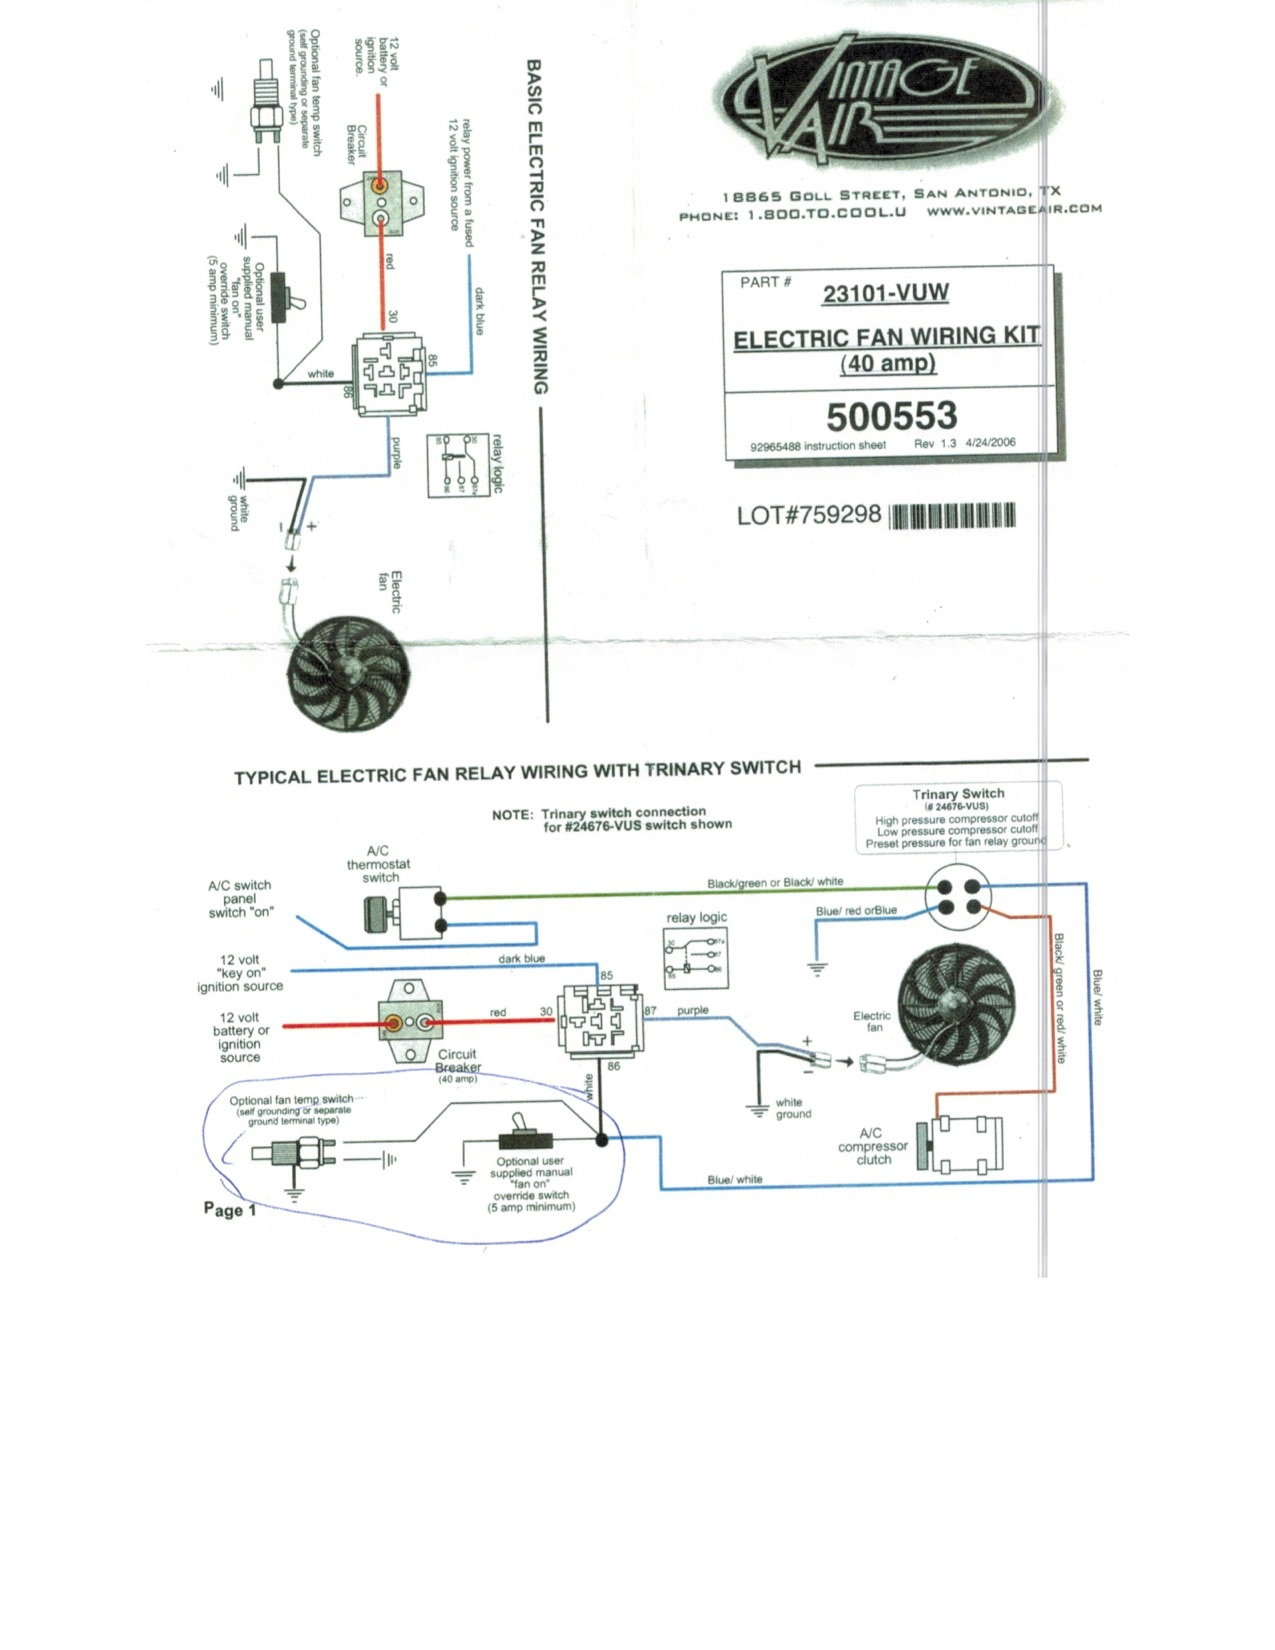 wrg 1822] vintage air wiring diagram gen iv Vintage Air Wiring Diagram